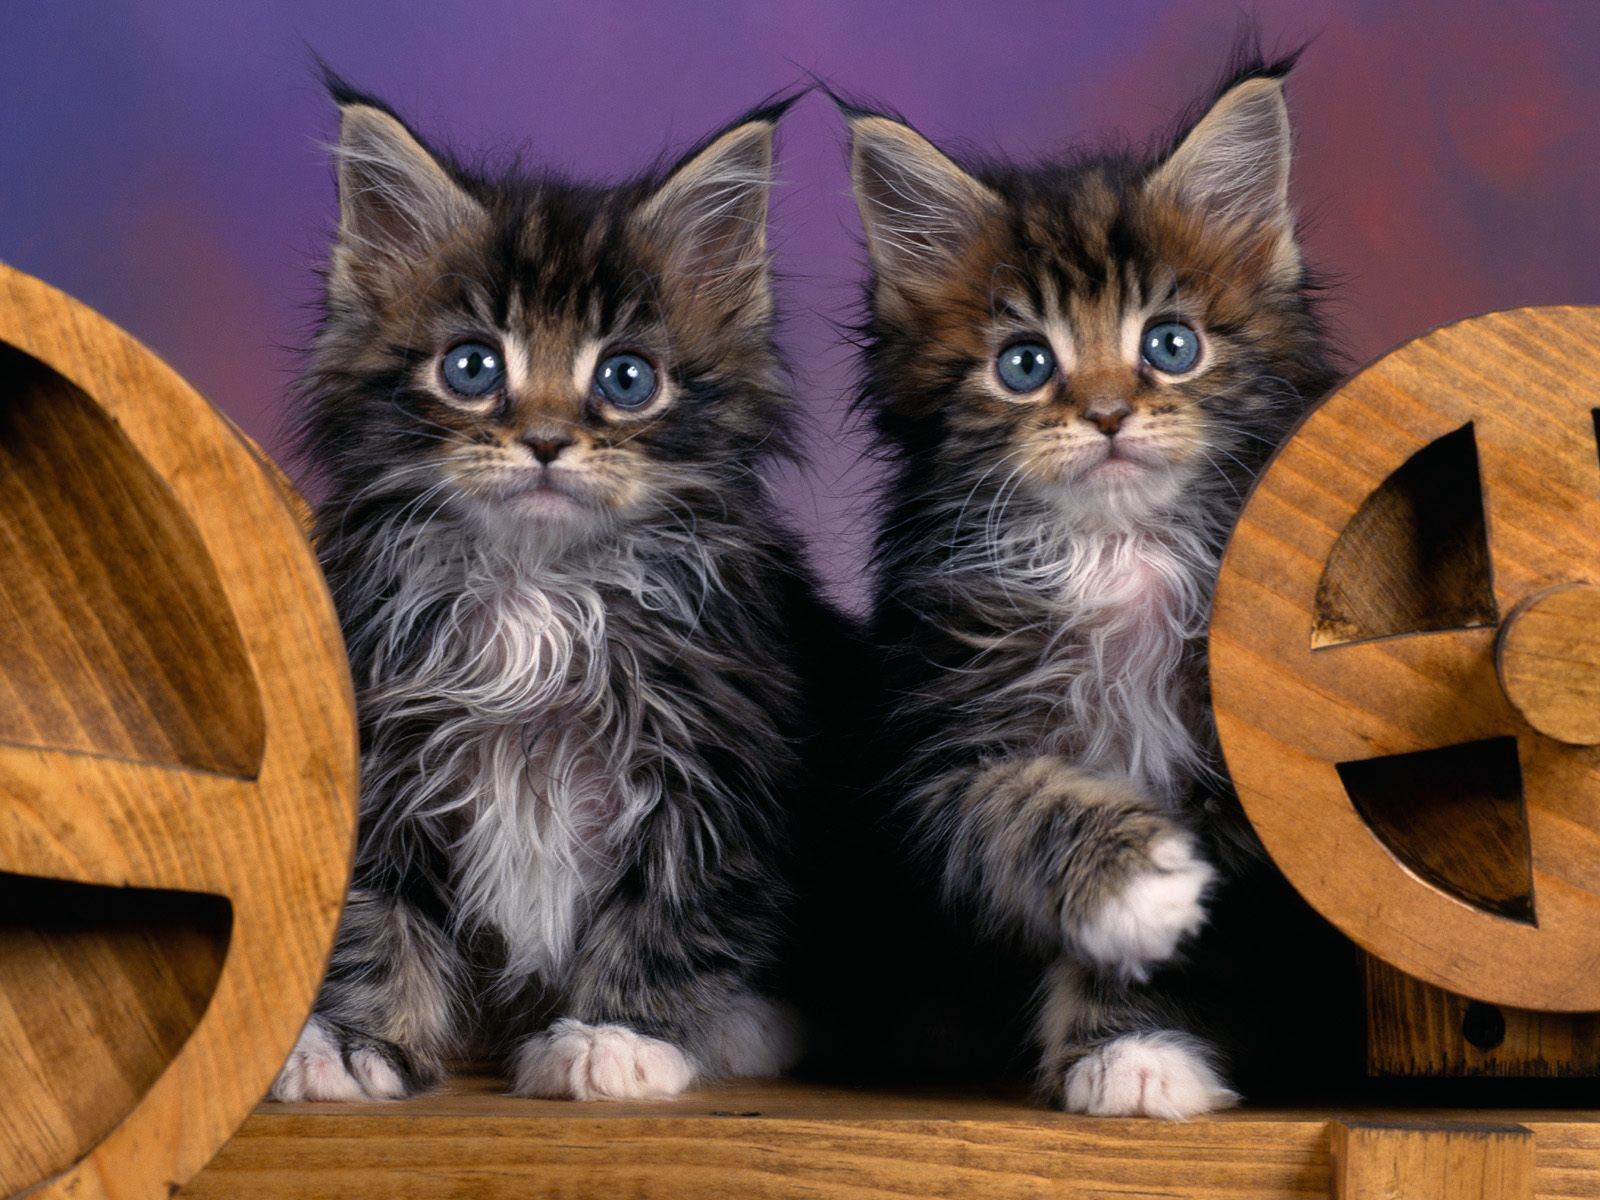 wallpapers maine coon kittens. Black Bedroom Furniture Sets. Home Design Ideas